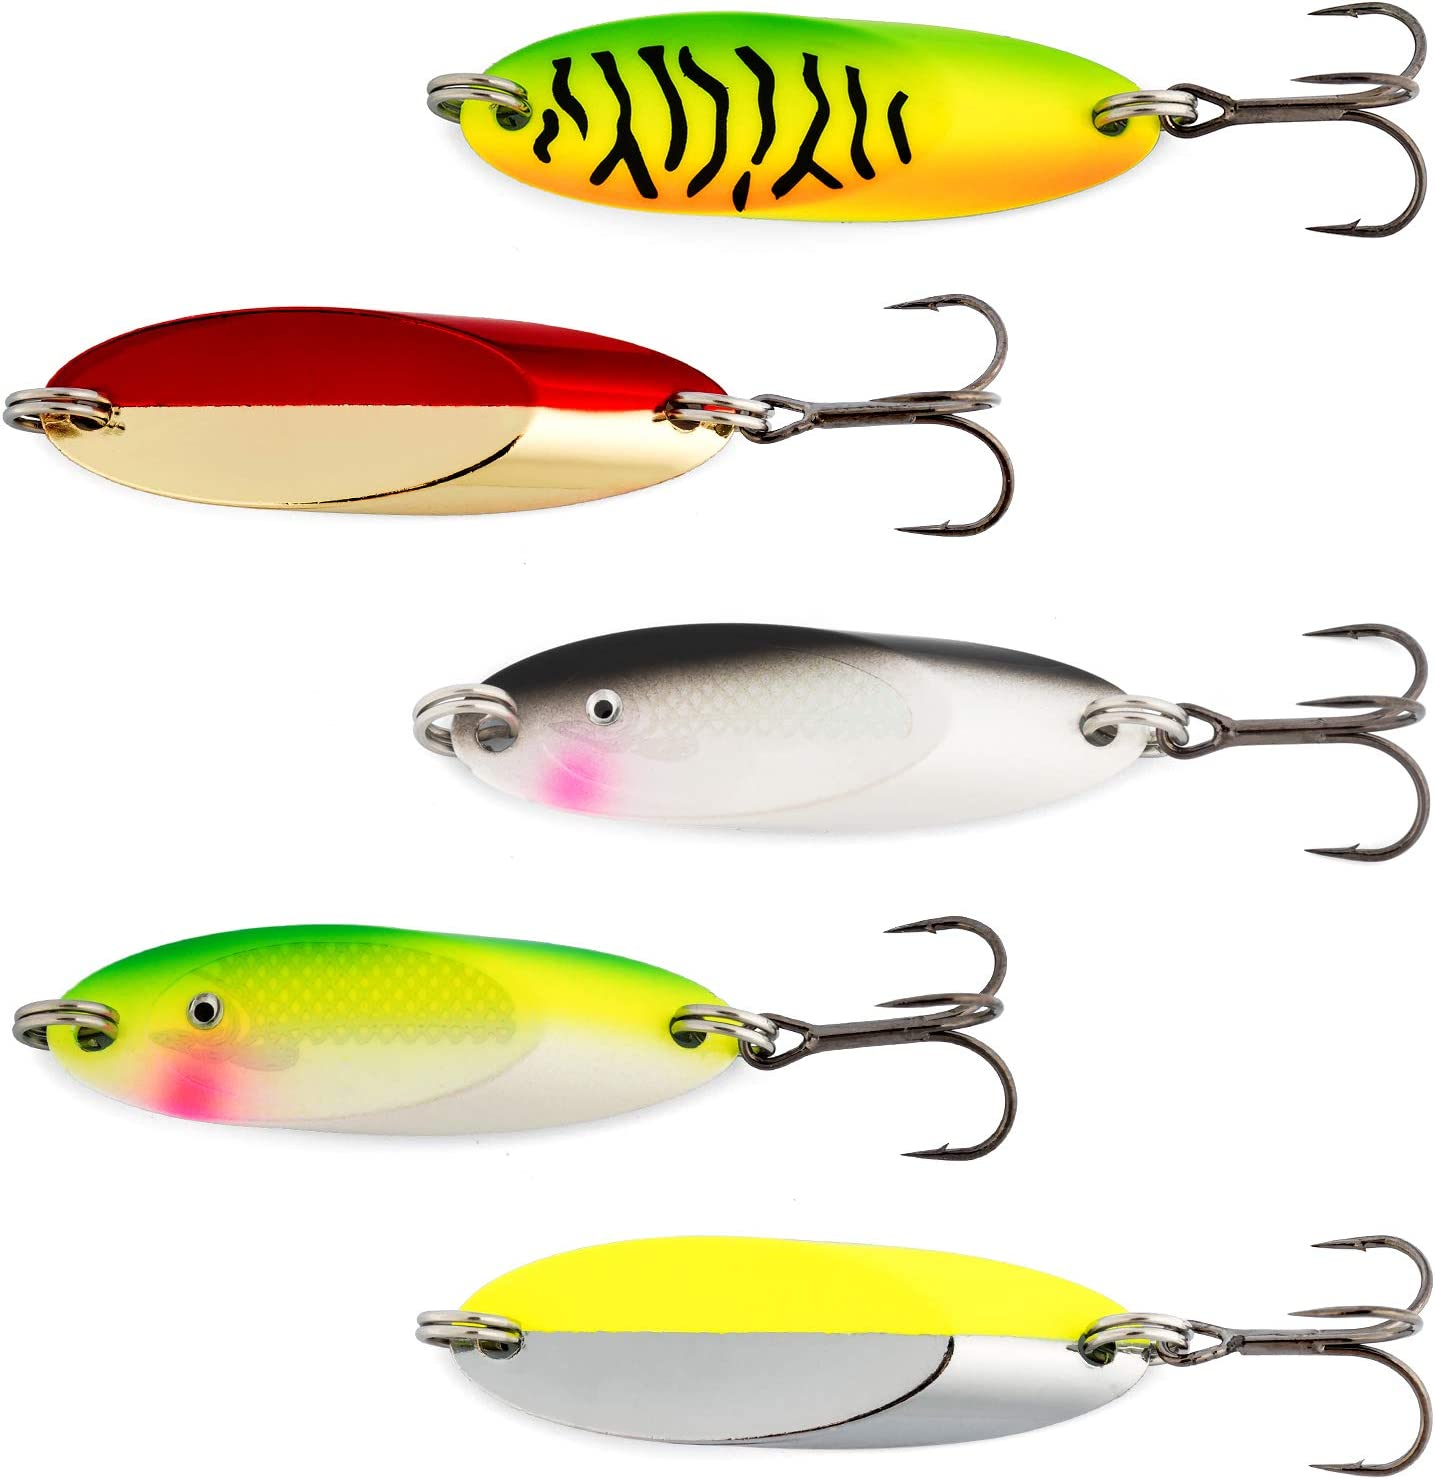 Dr.Fish 5 Fishing Special price for a Daily bargain sale limited time Spoons Long Casting Spoon Treble Mustad H Kit